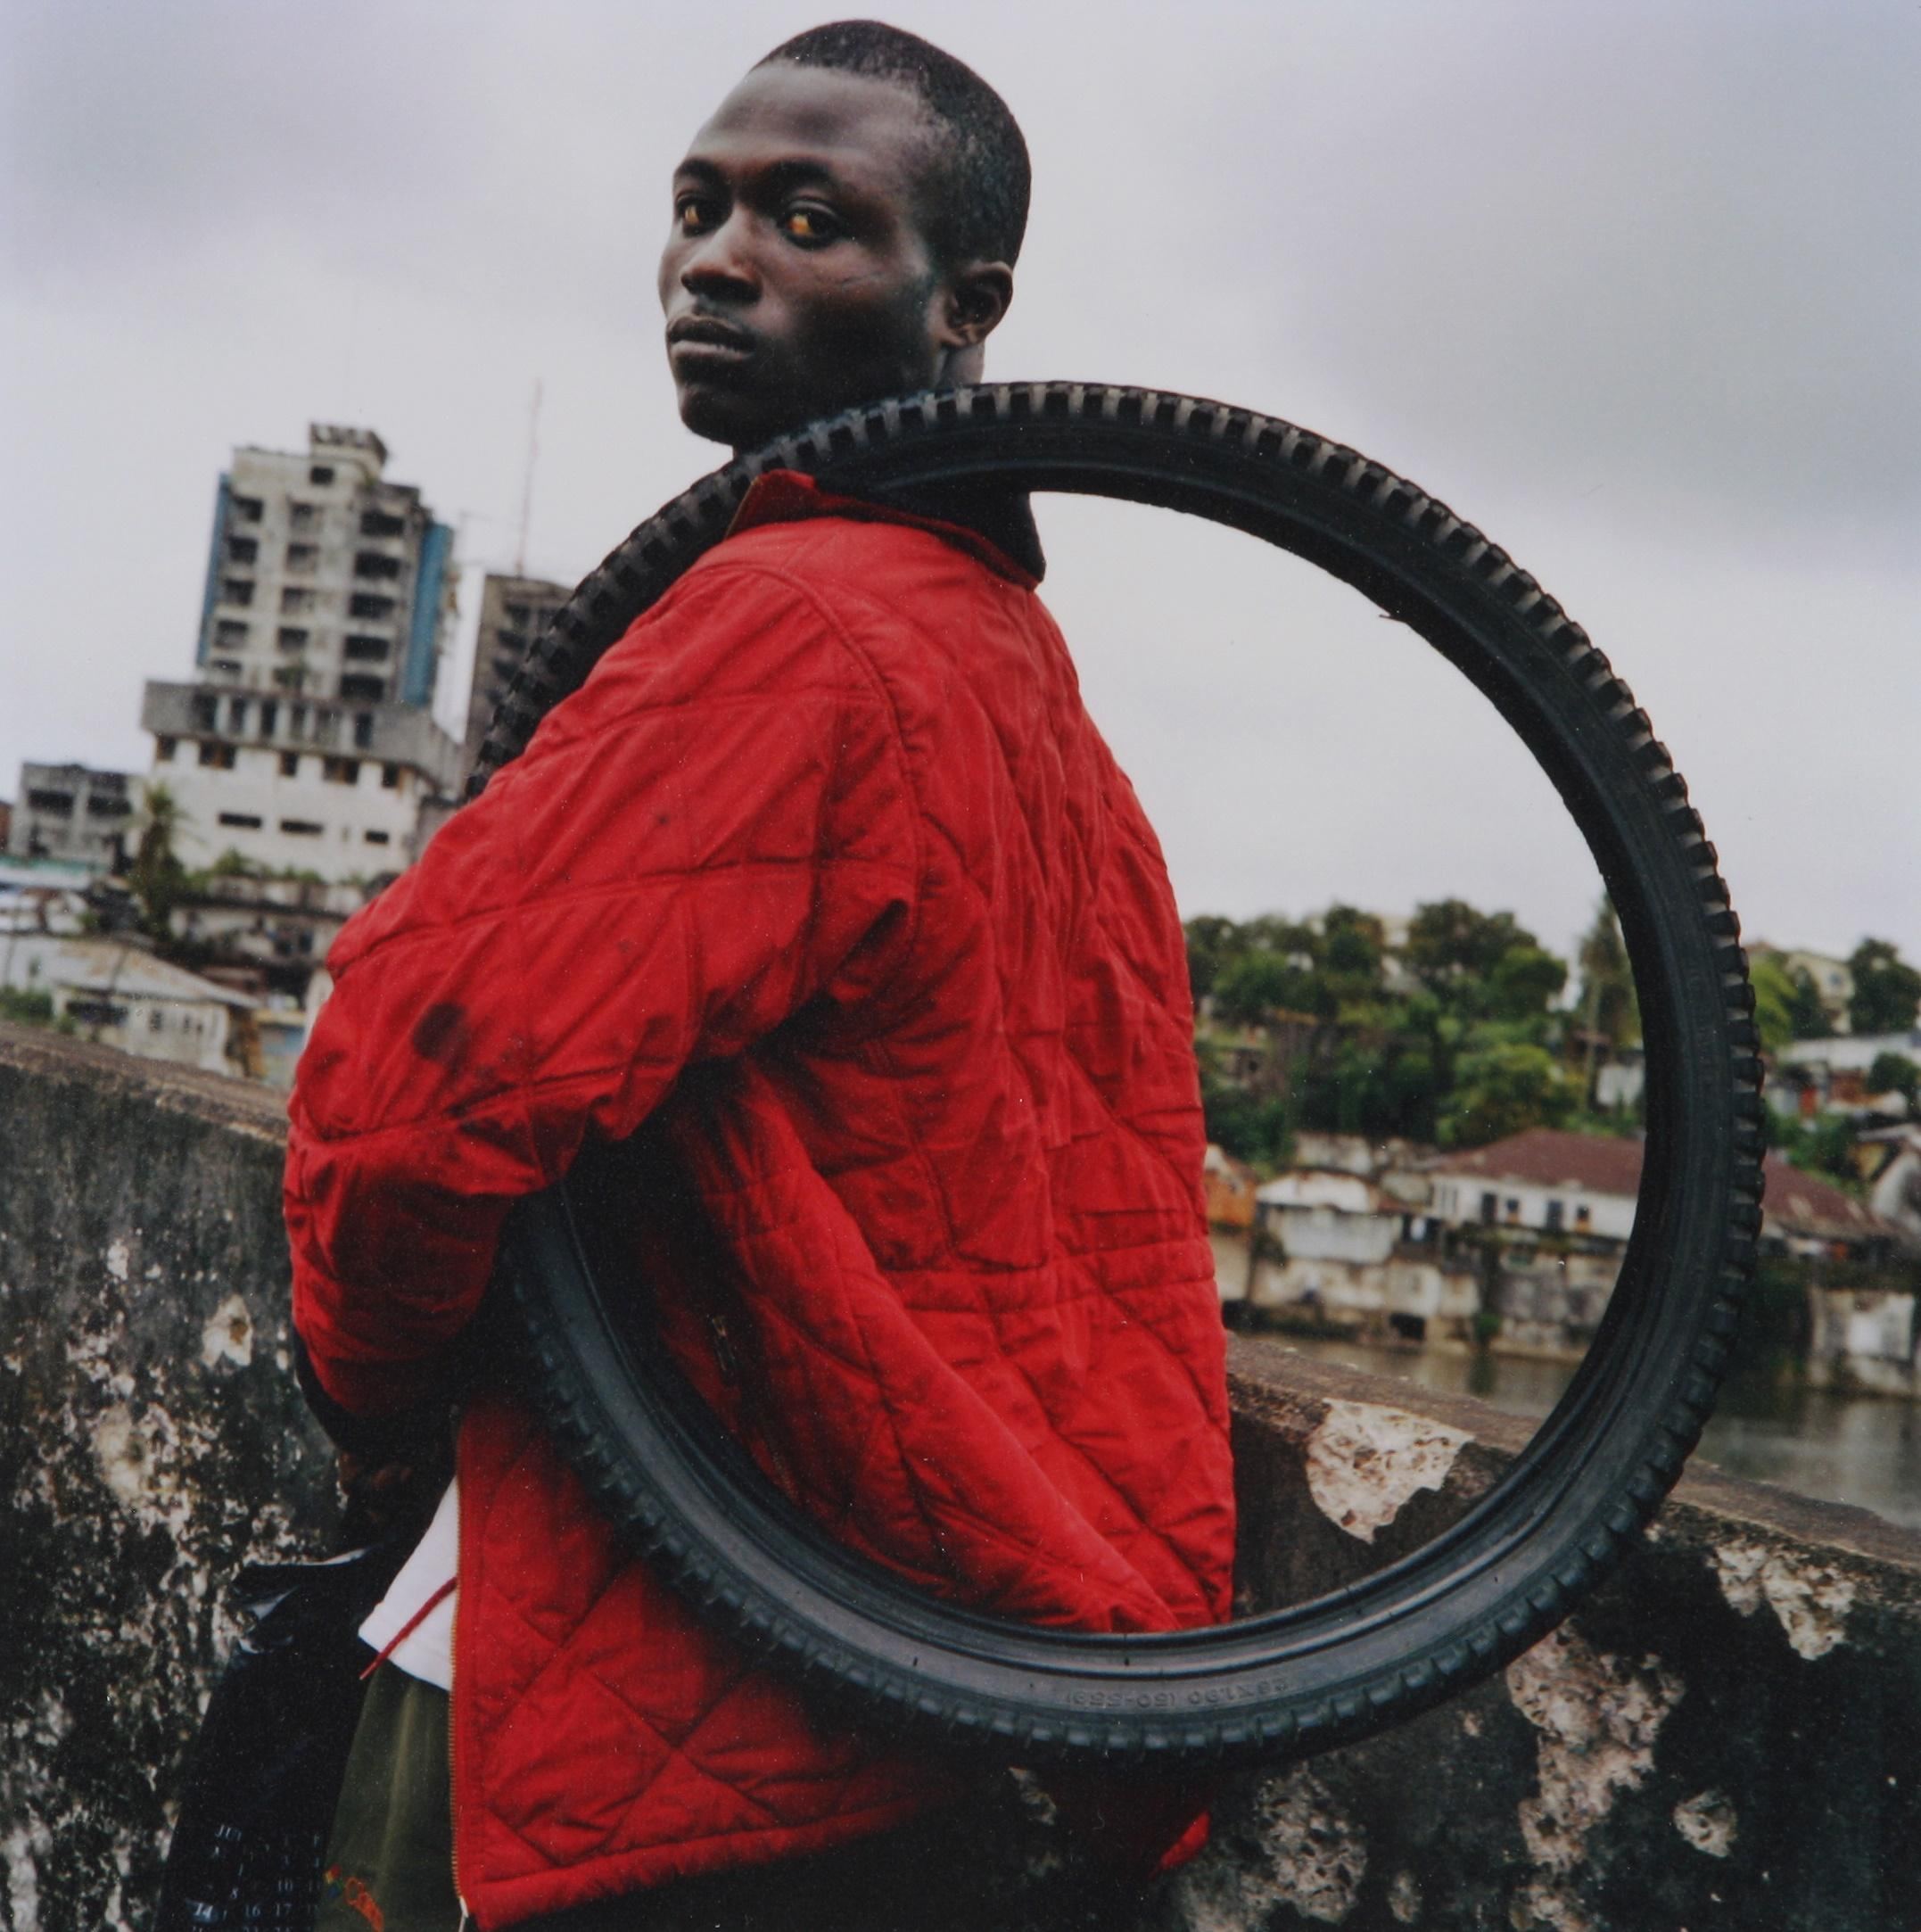 Tim Hetherington (Britain 1970-2011) Liberia 2003. A young man on the Gabriel Tucker bridge in central Monrovia carries a tyre which he is trying to sell.